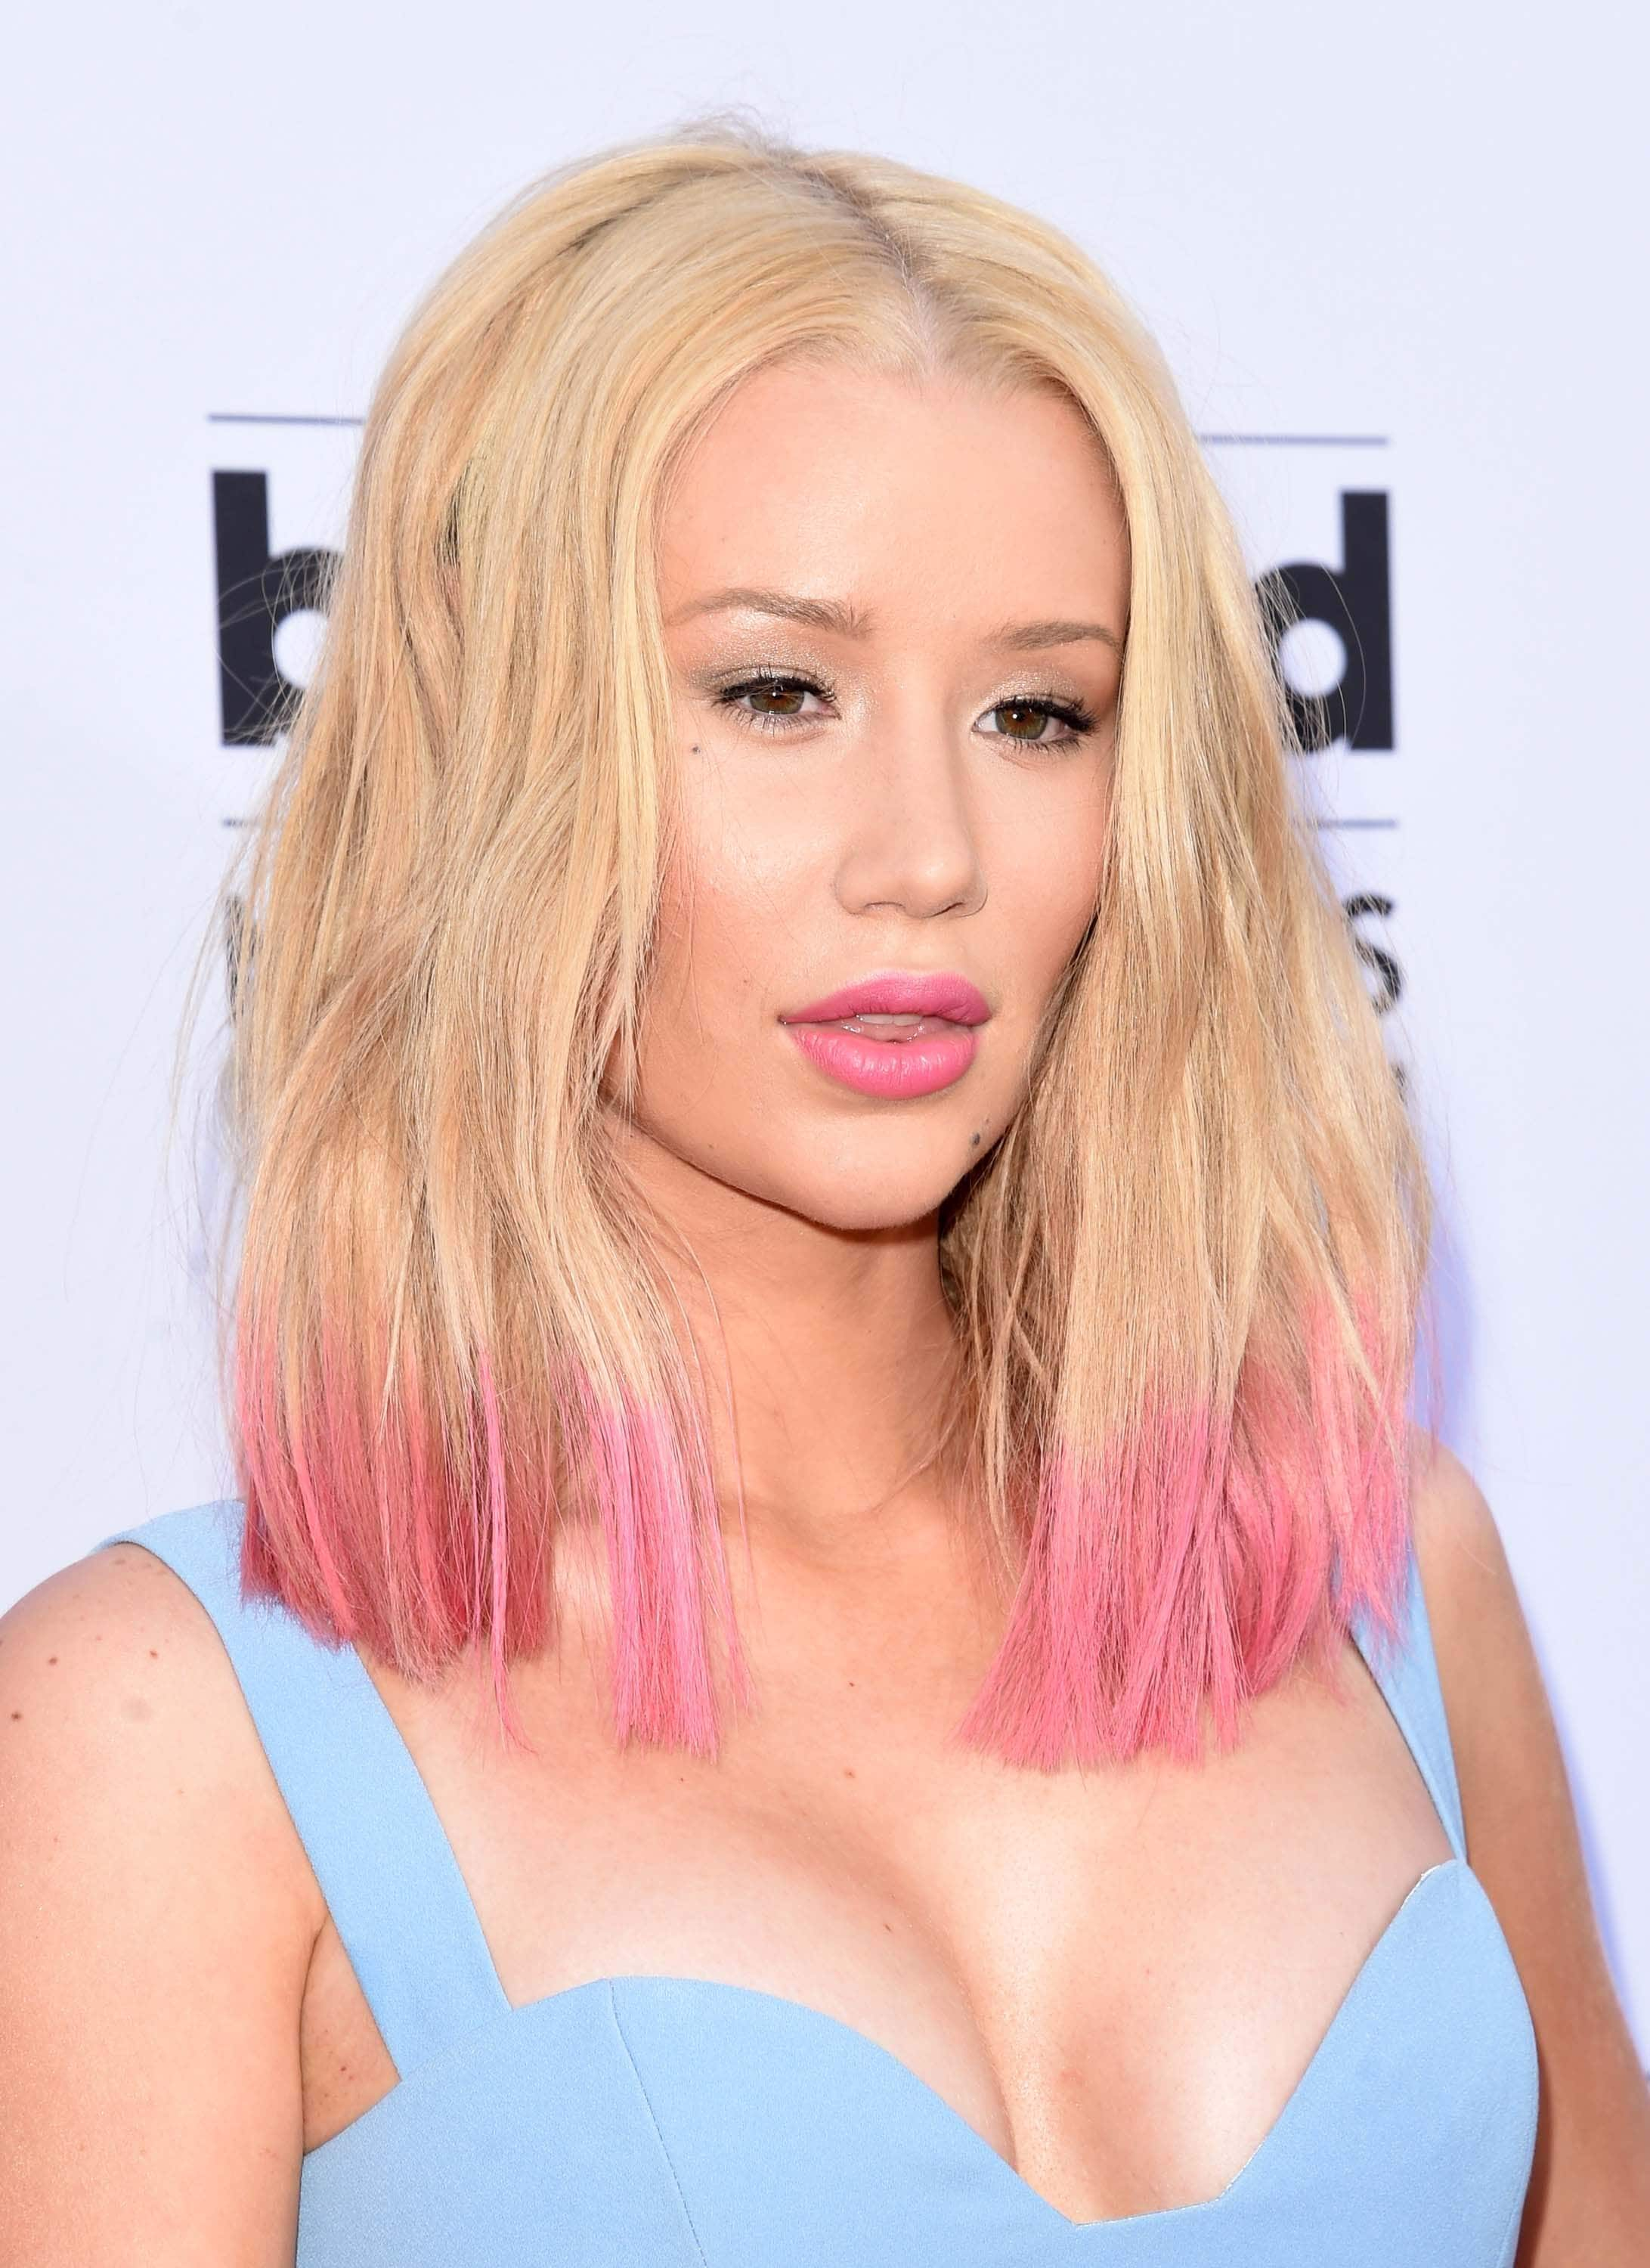 dip-dyed pink hair tips iggy azalea